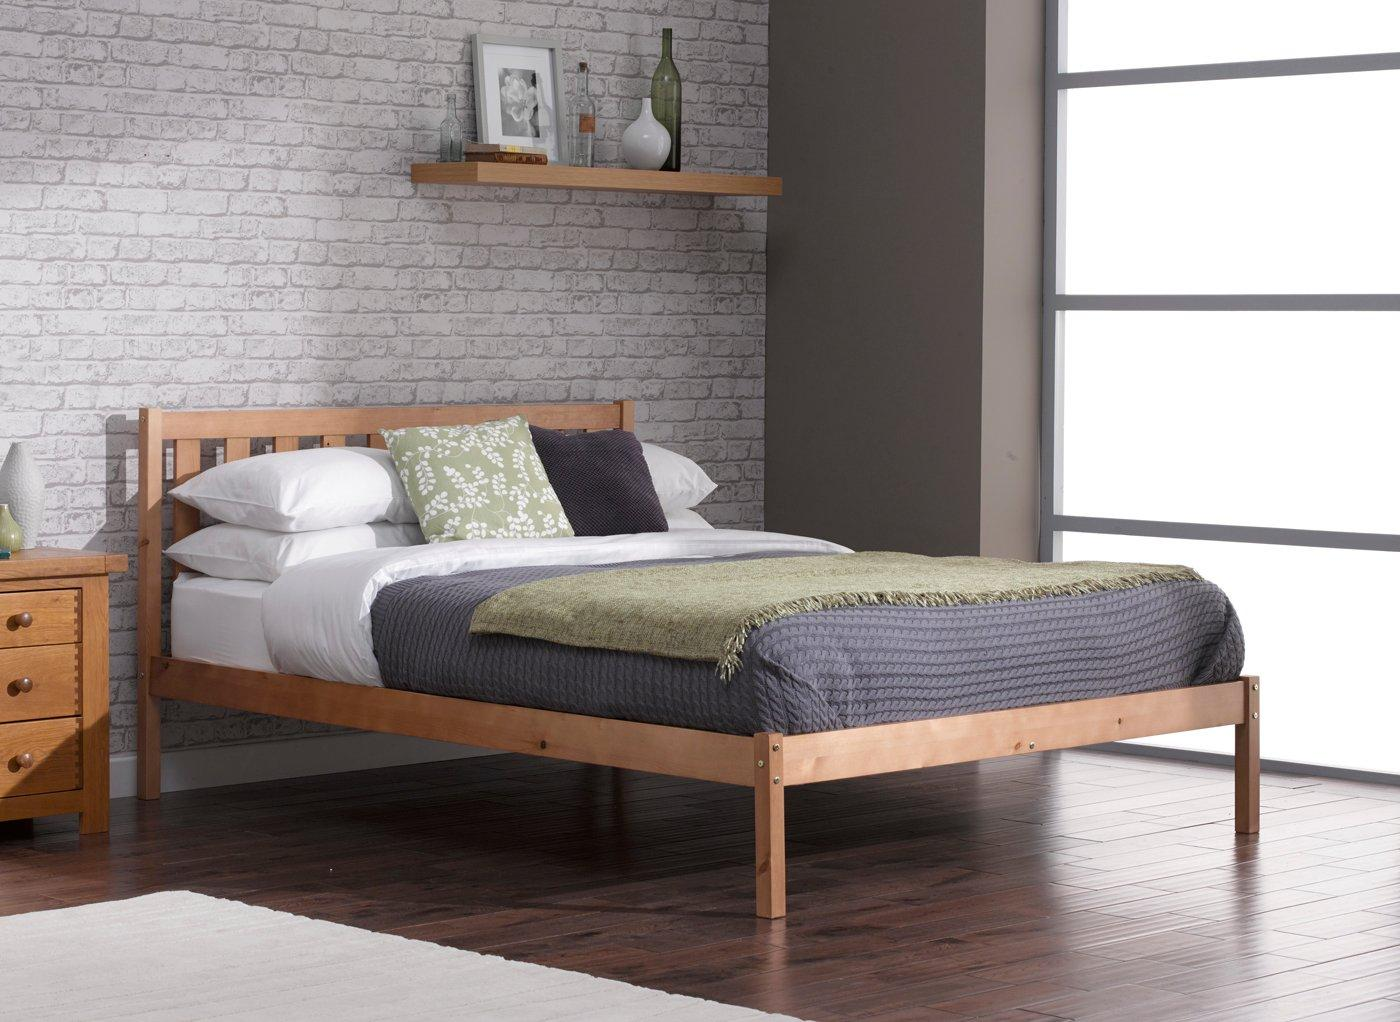 Sandhurst Wooden Bed Frame All Beds Beds Dreams